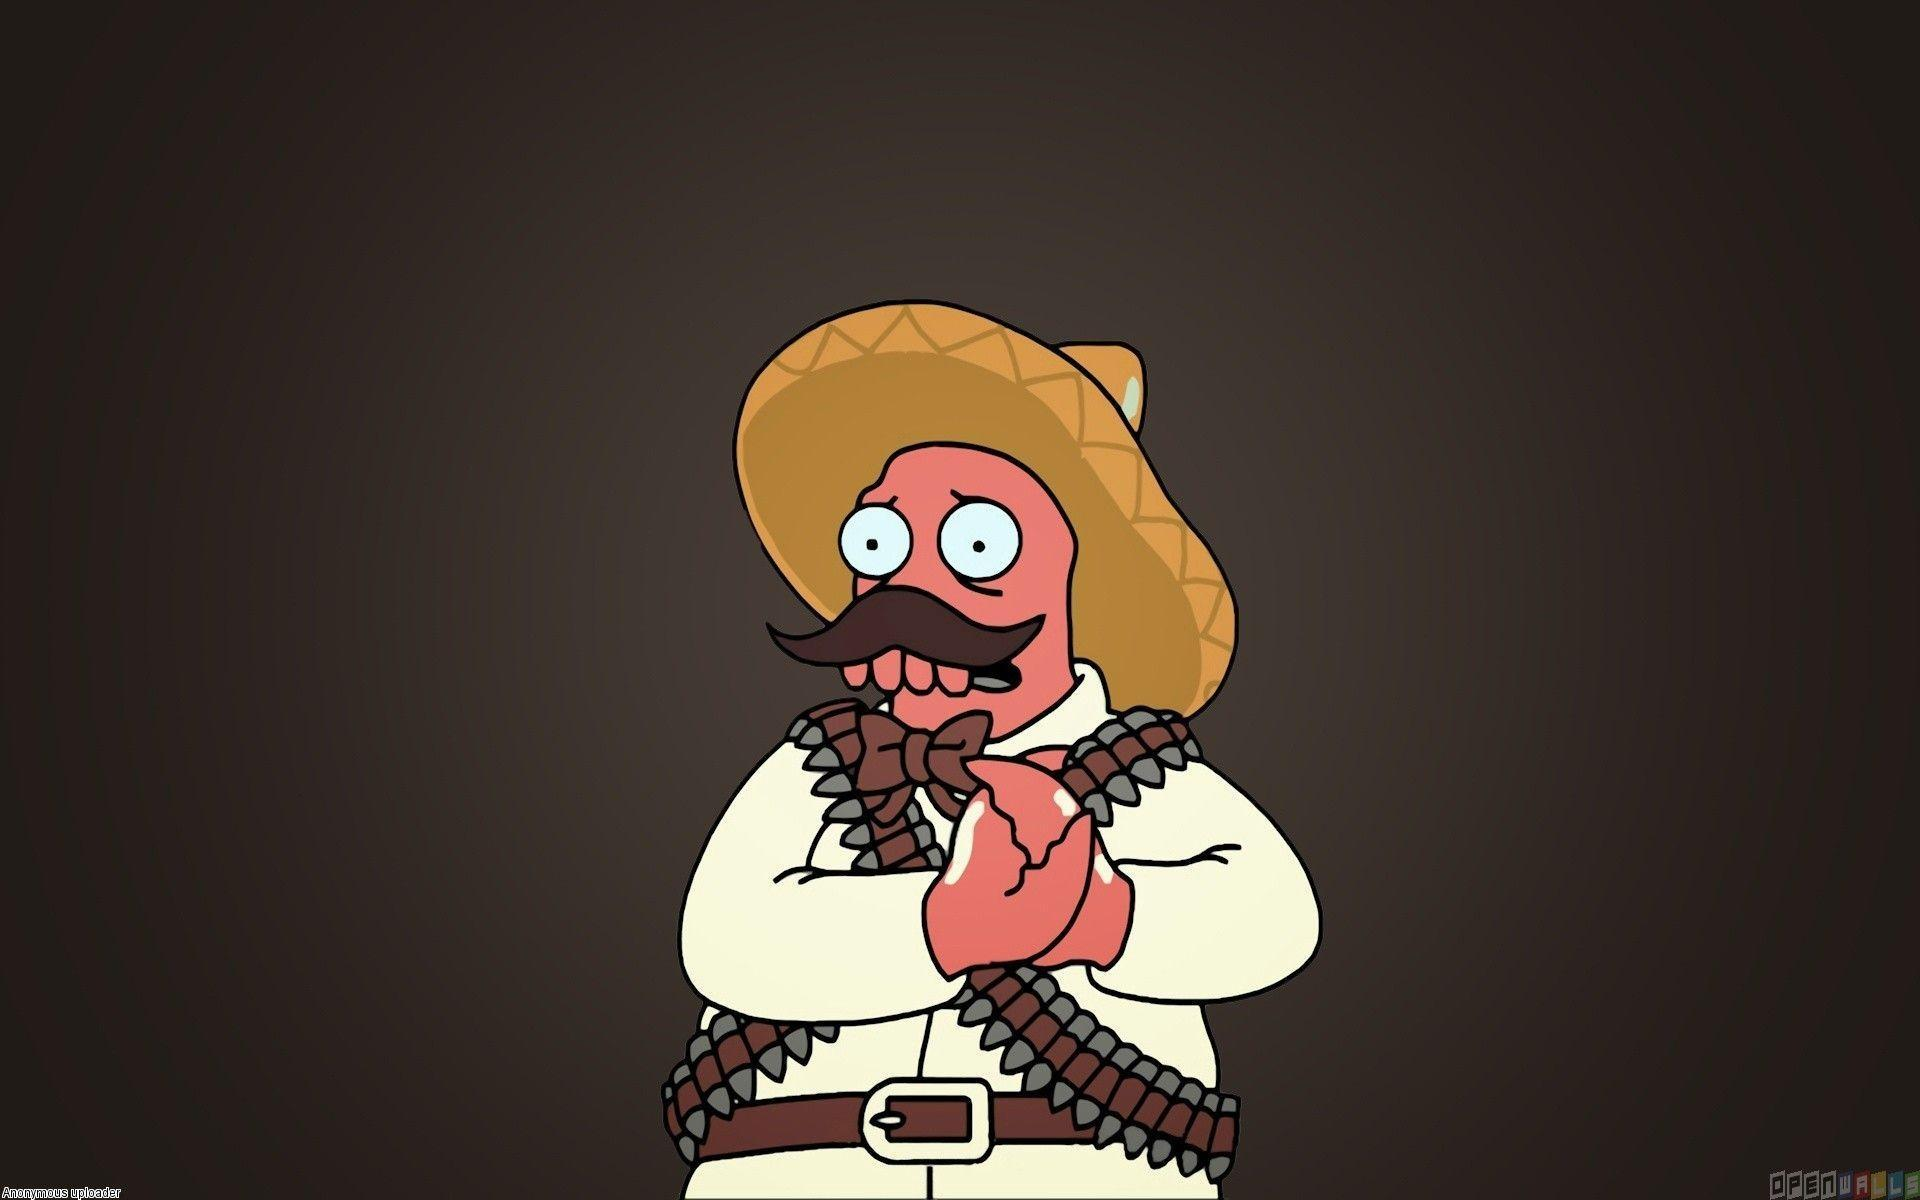 Black Cartoon Wallpaper 55 Image Collections Of: Dr Zoidberg Wallpapers